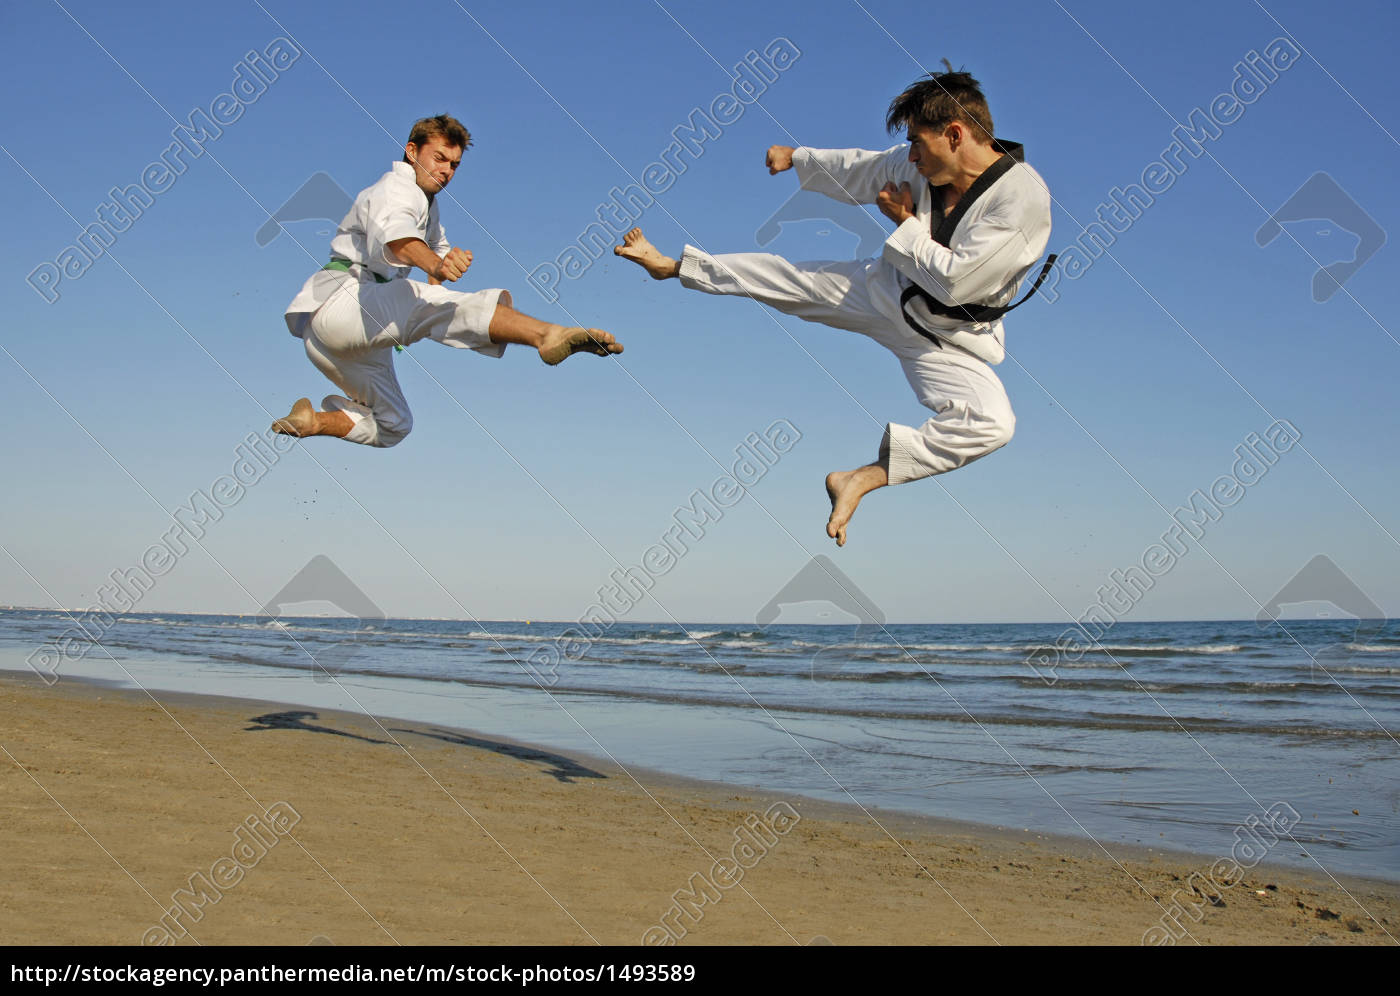 taekwondo, on, the, beach - 1493589